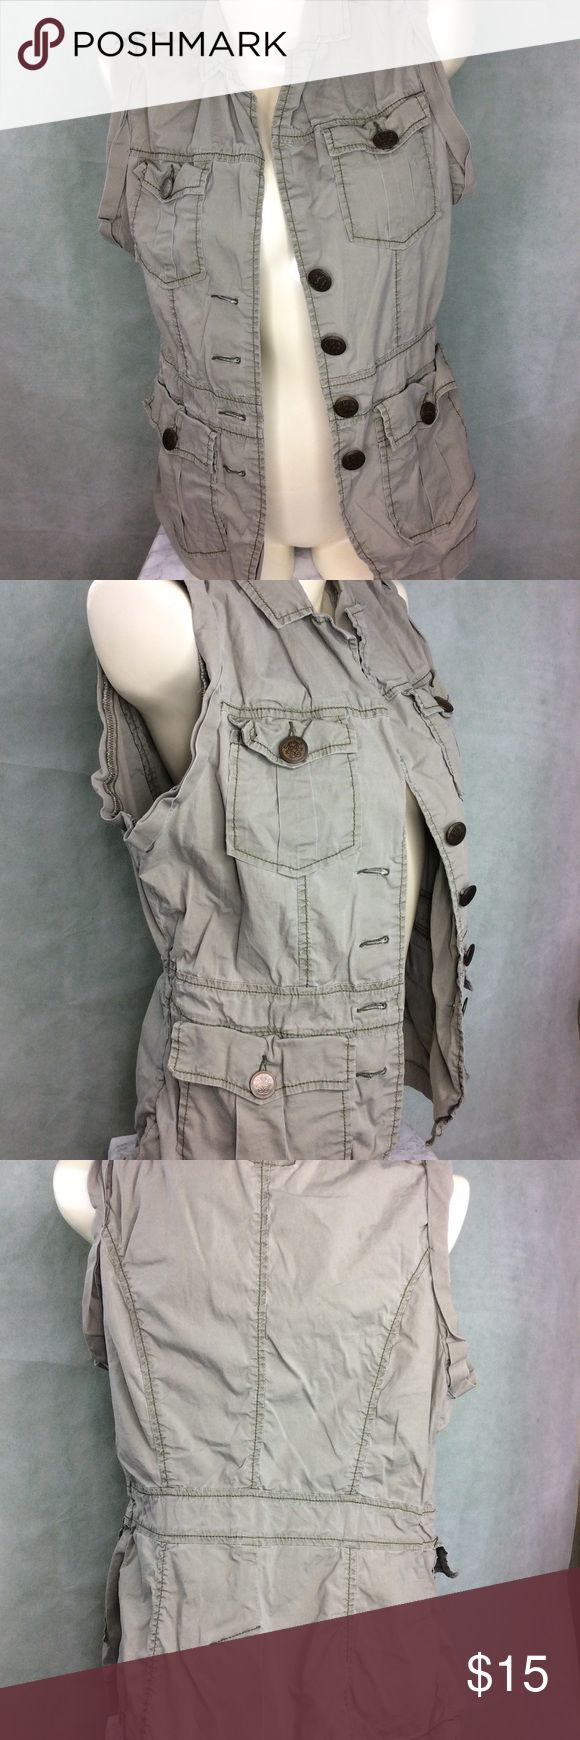 Olive green Jessica Simpson vest Cute and edgy olive green colored vest with 4 pockets by Jessica Simpson Jessica Simpson Jackets & Coats Vests